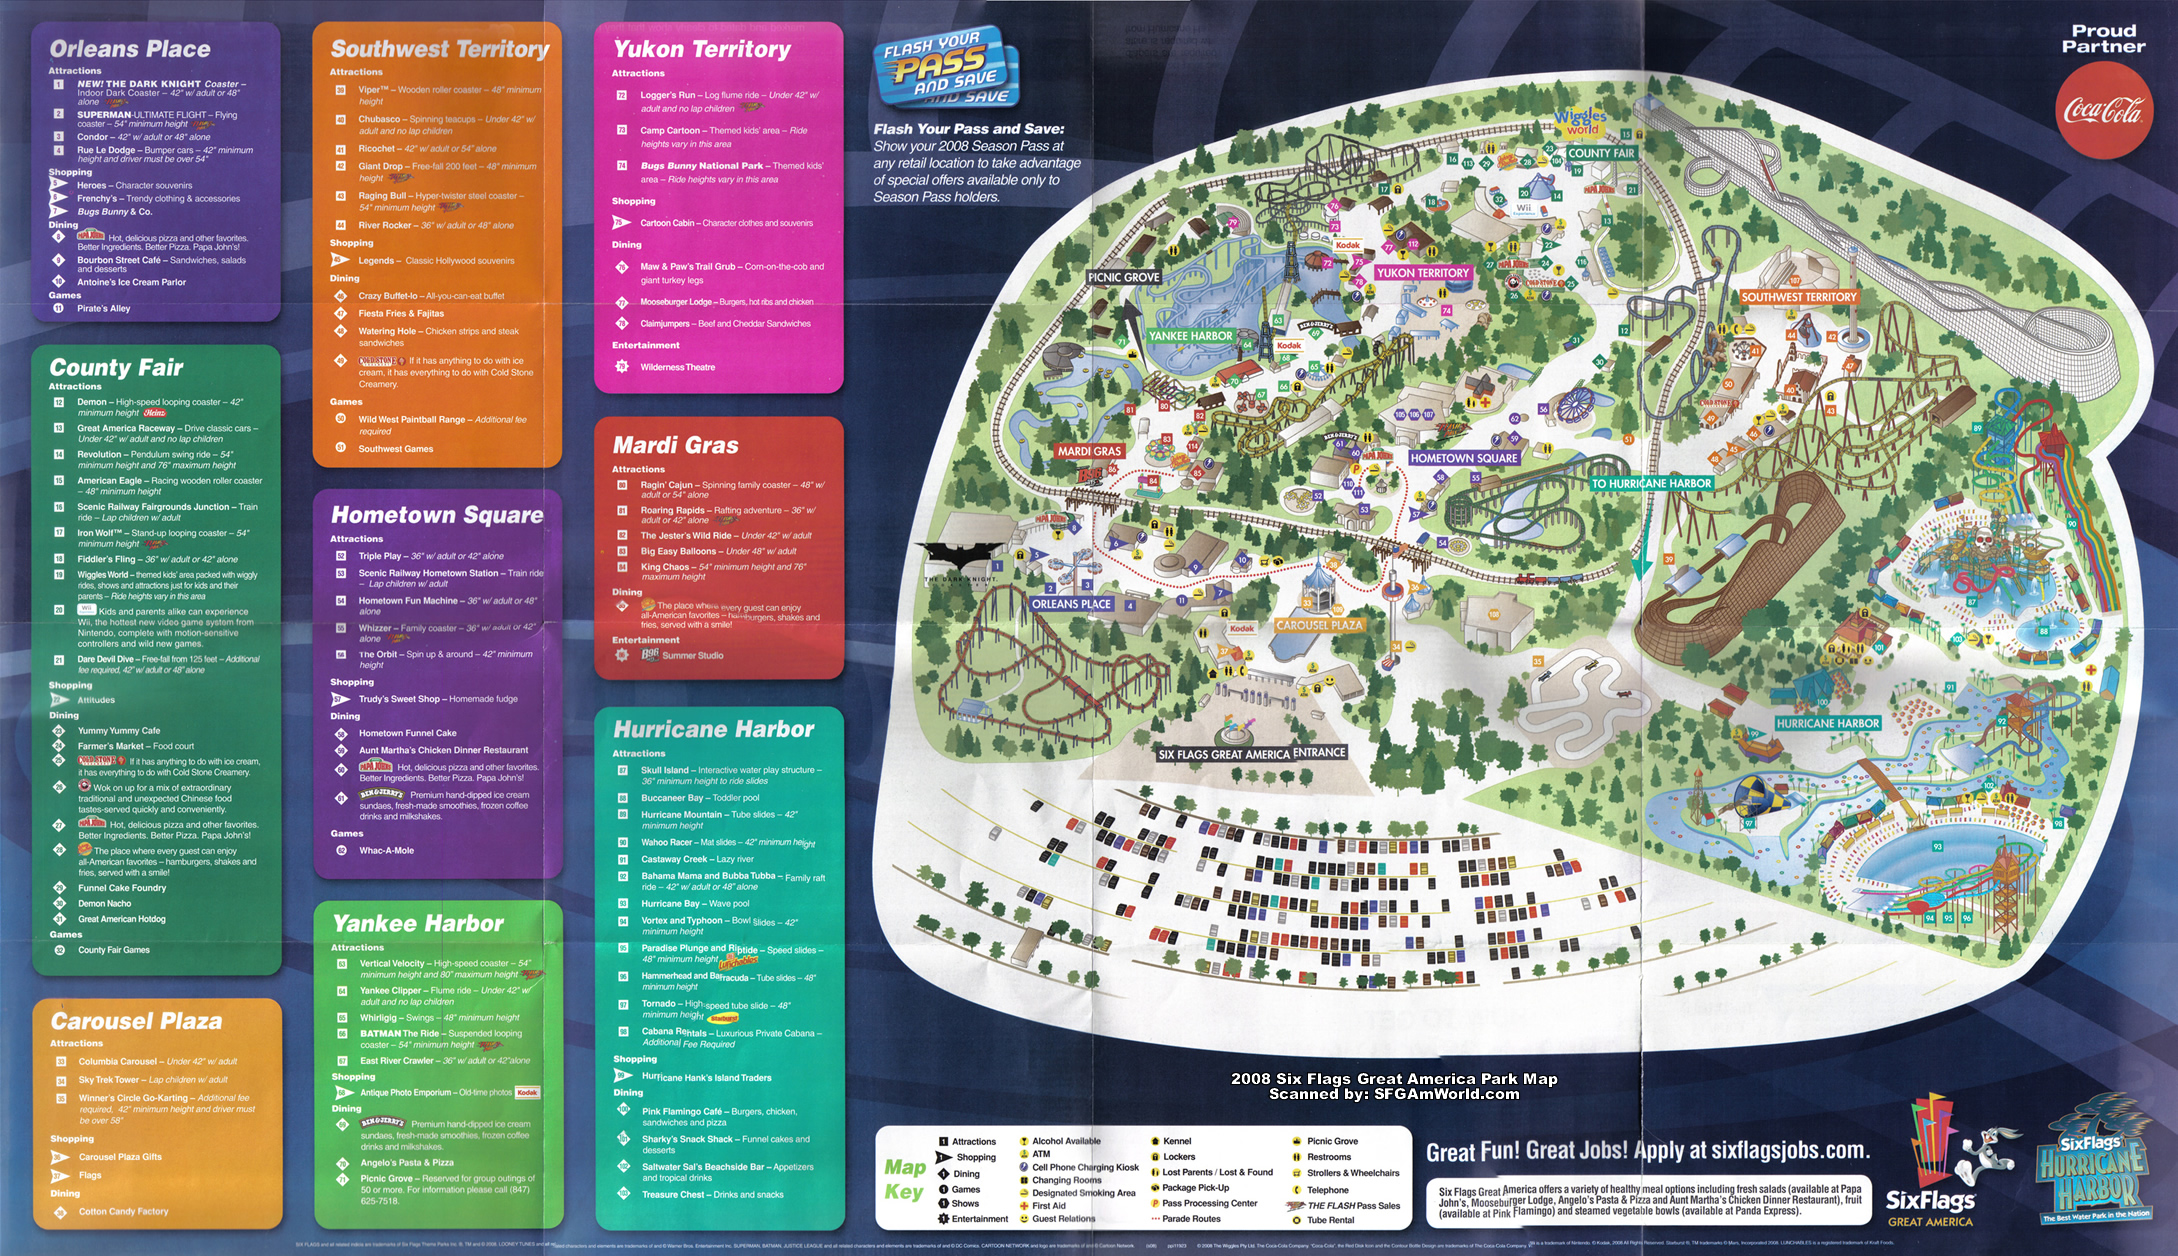 SFGAmWorld.com - Park Maps on six flags nj map, magic springs and crystal falls map, dorney park map, washington street mall map, kingda ka map, mt. olympus water & theme park map, kiddieland map, kennywood map, holiday world santa claus indiana map, the gallery at market east map, penn hills resort map, knott's berry farm map, magic kingdom map, 2014 six flags magic mountain map, great america map, cedar point map, thorpe park map, wyandot lake map, big e fair map, 2014 six flags over georgia map,